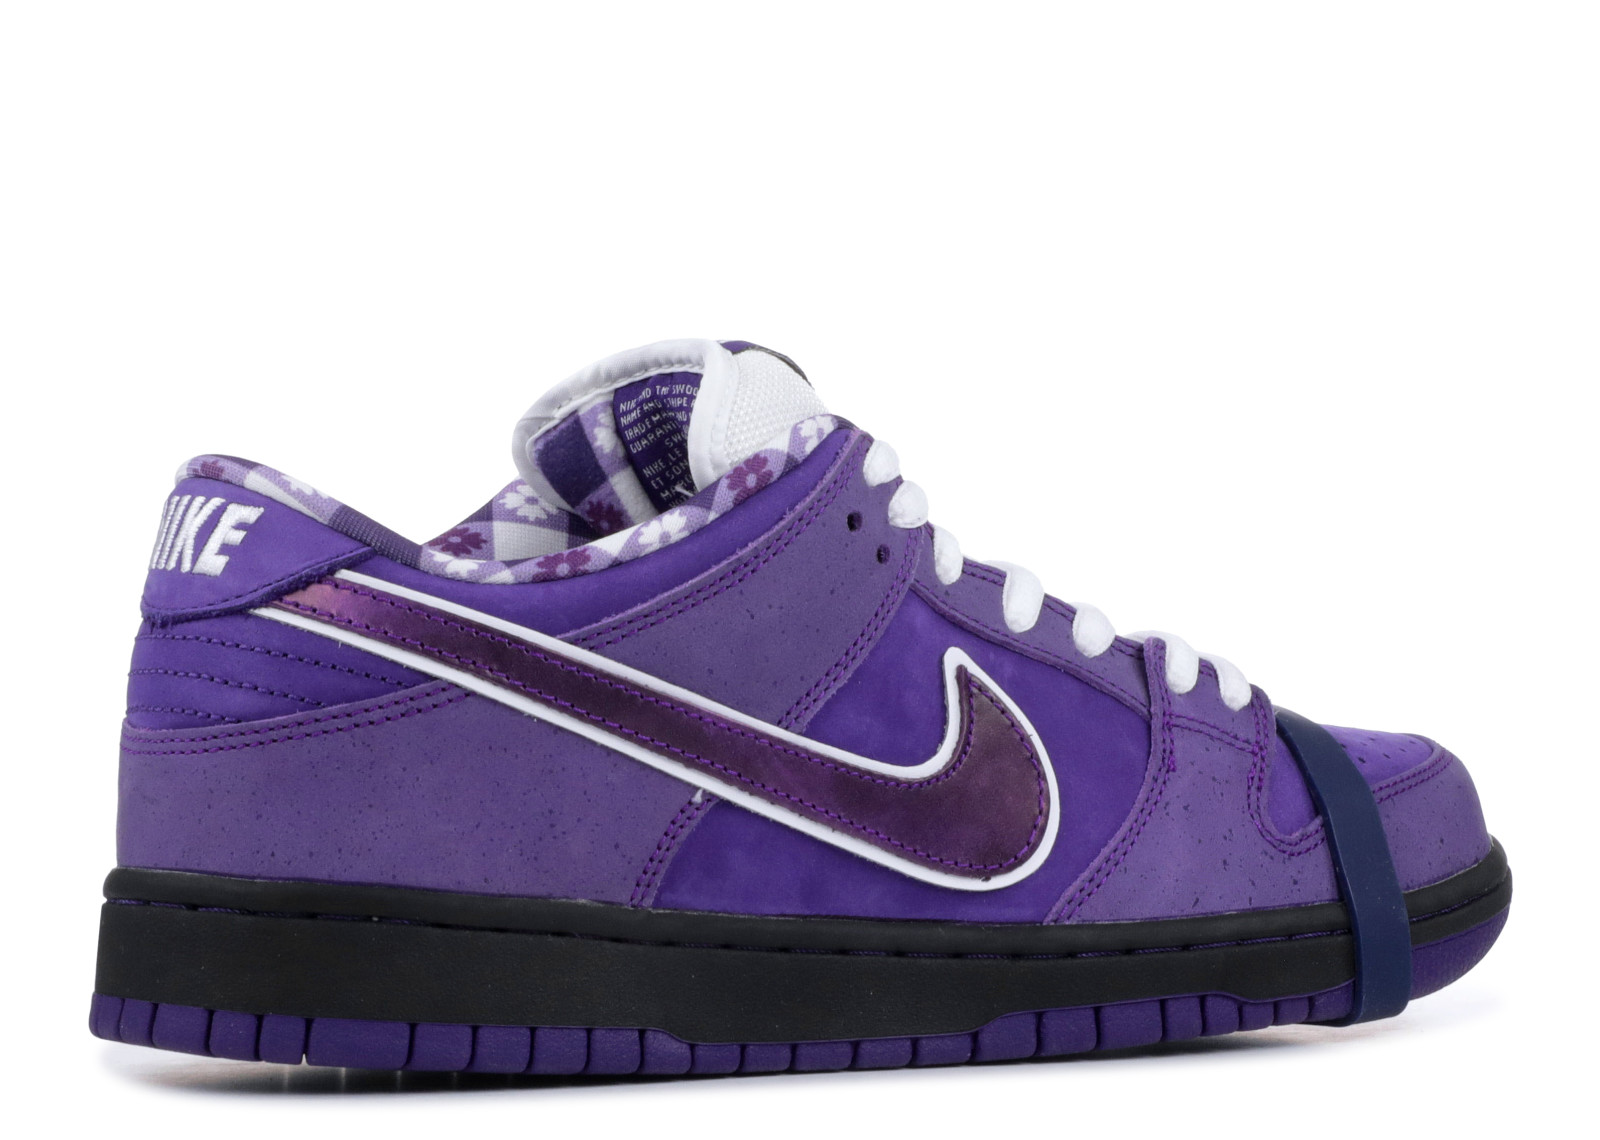 dced50c4cdf42 SB Dunk Low Concepts Purple Lobster - 3